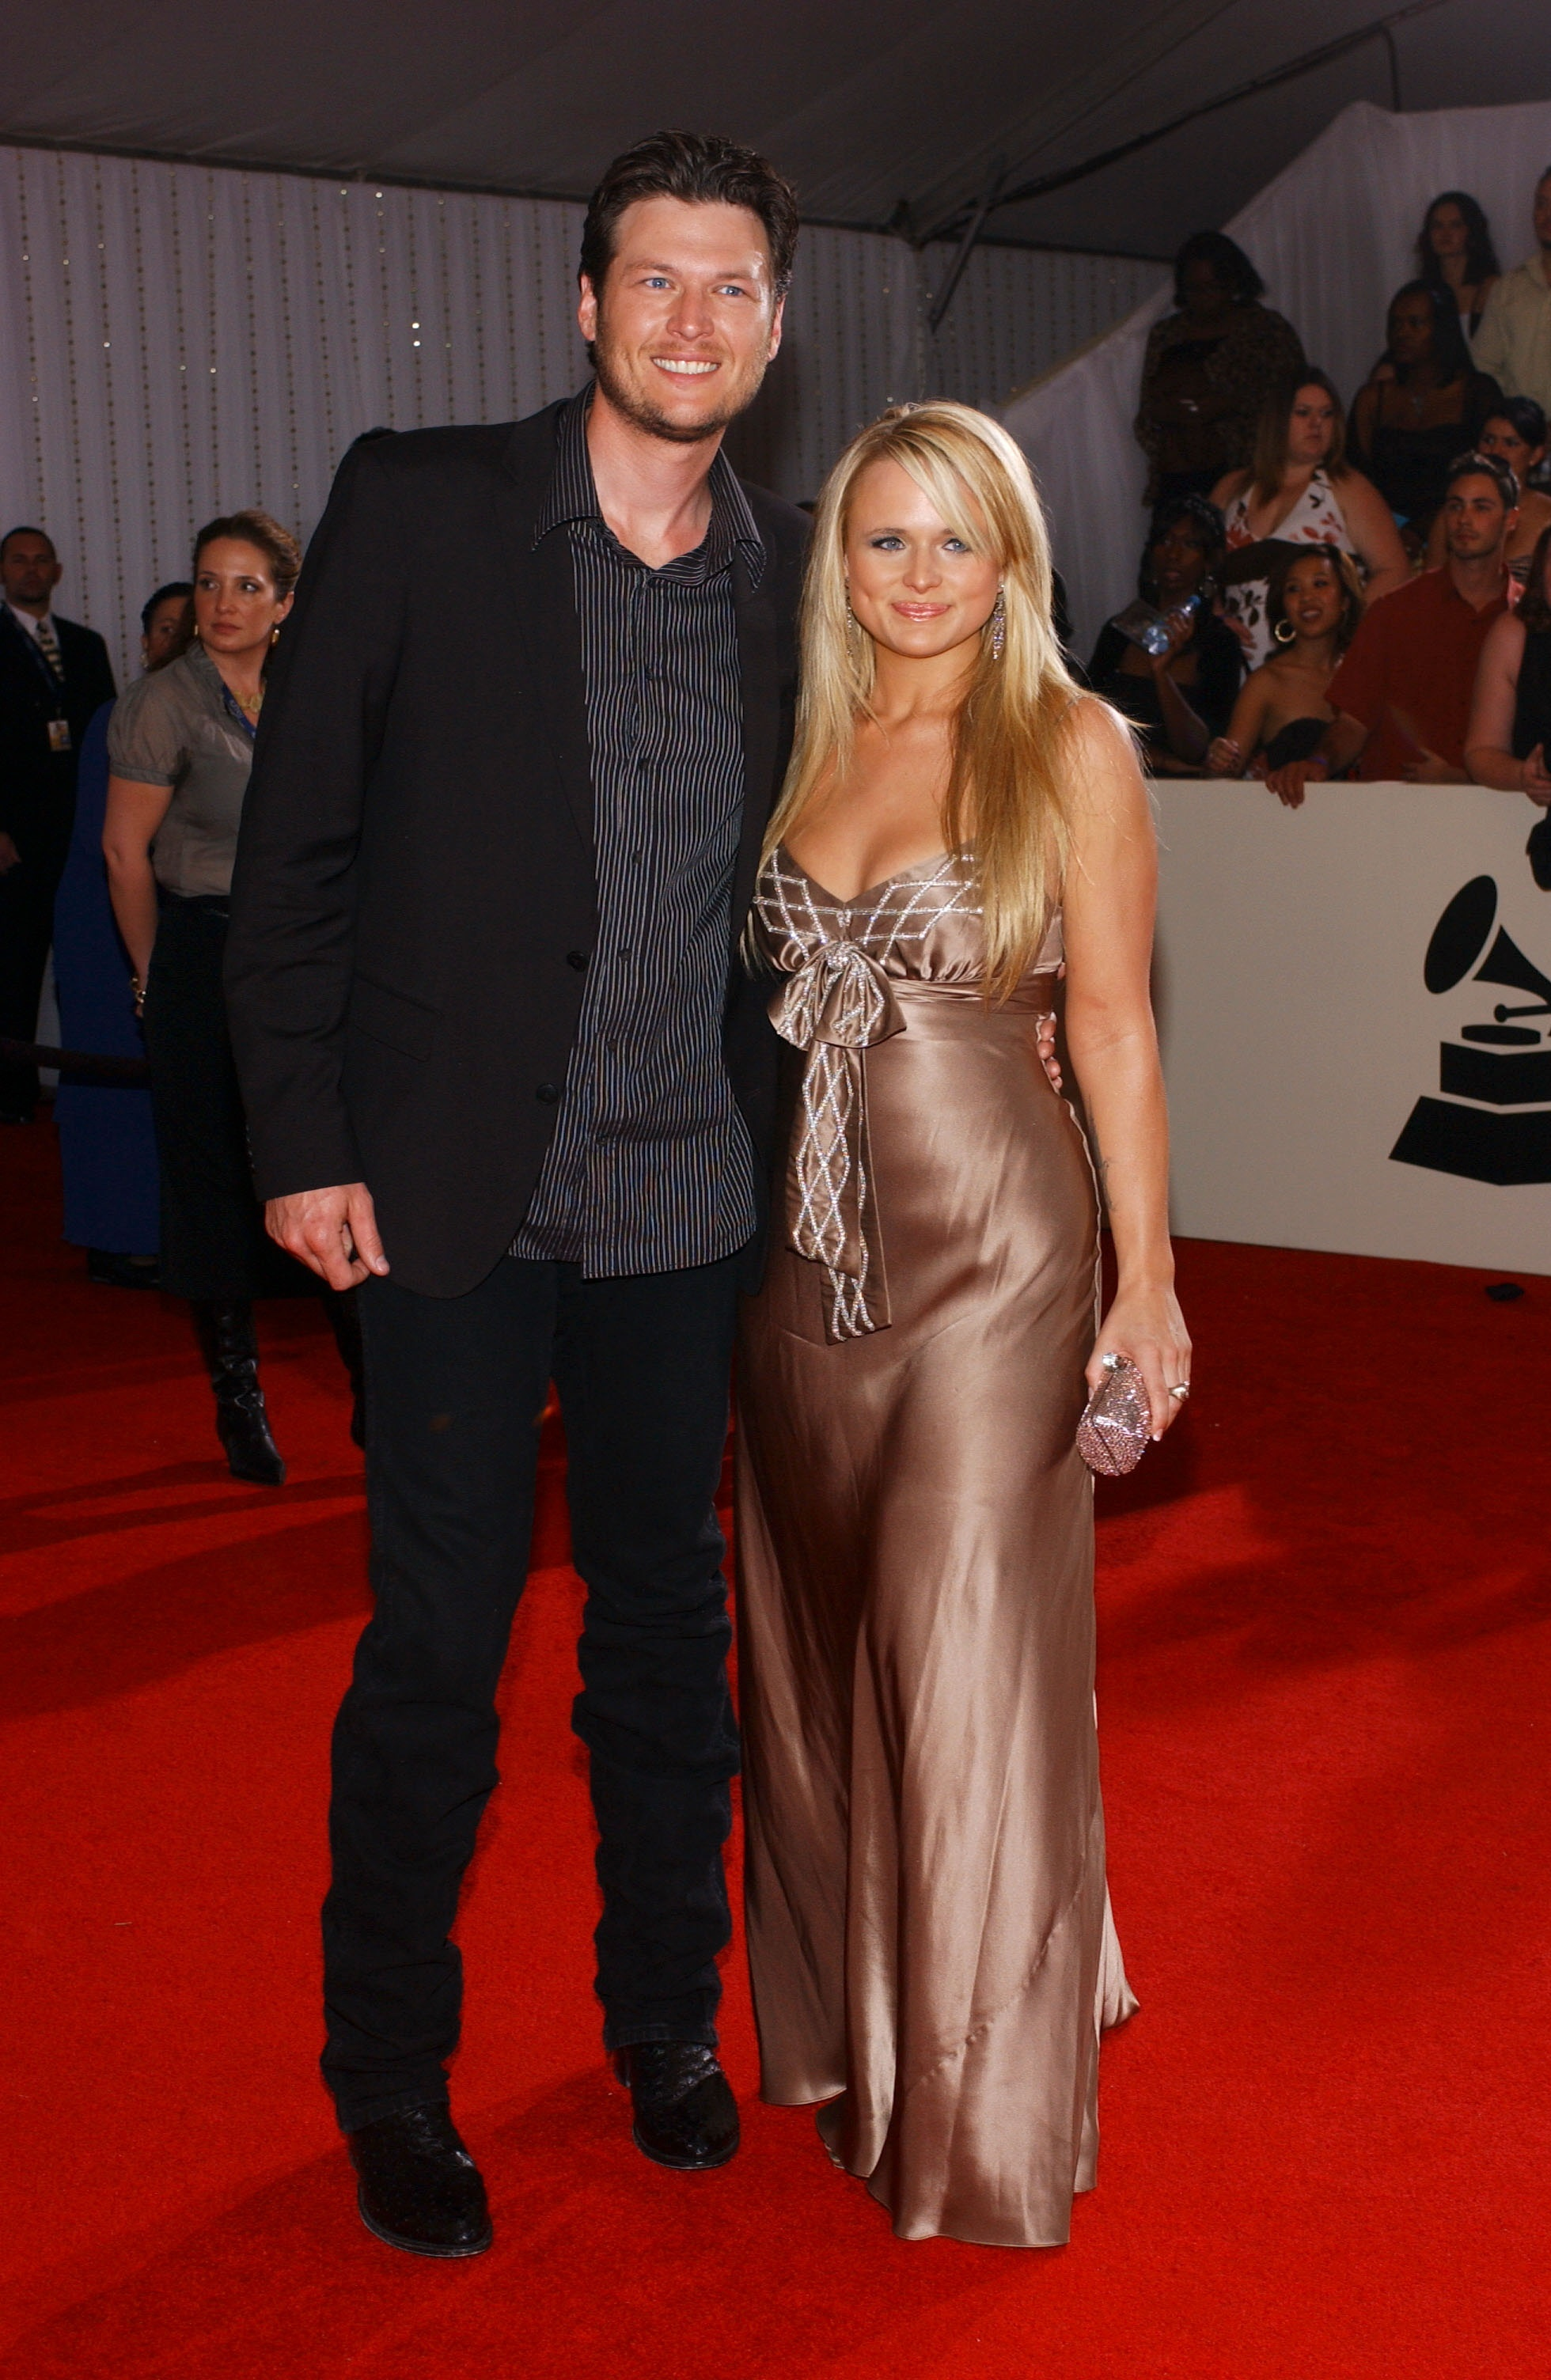 Blake Shelton and Miranda Lambert attend the 50th Annual Grammy Awards at Staples Center in Los Angeles on Feb. 10, 2008.